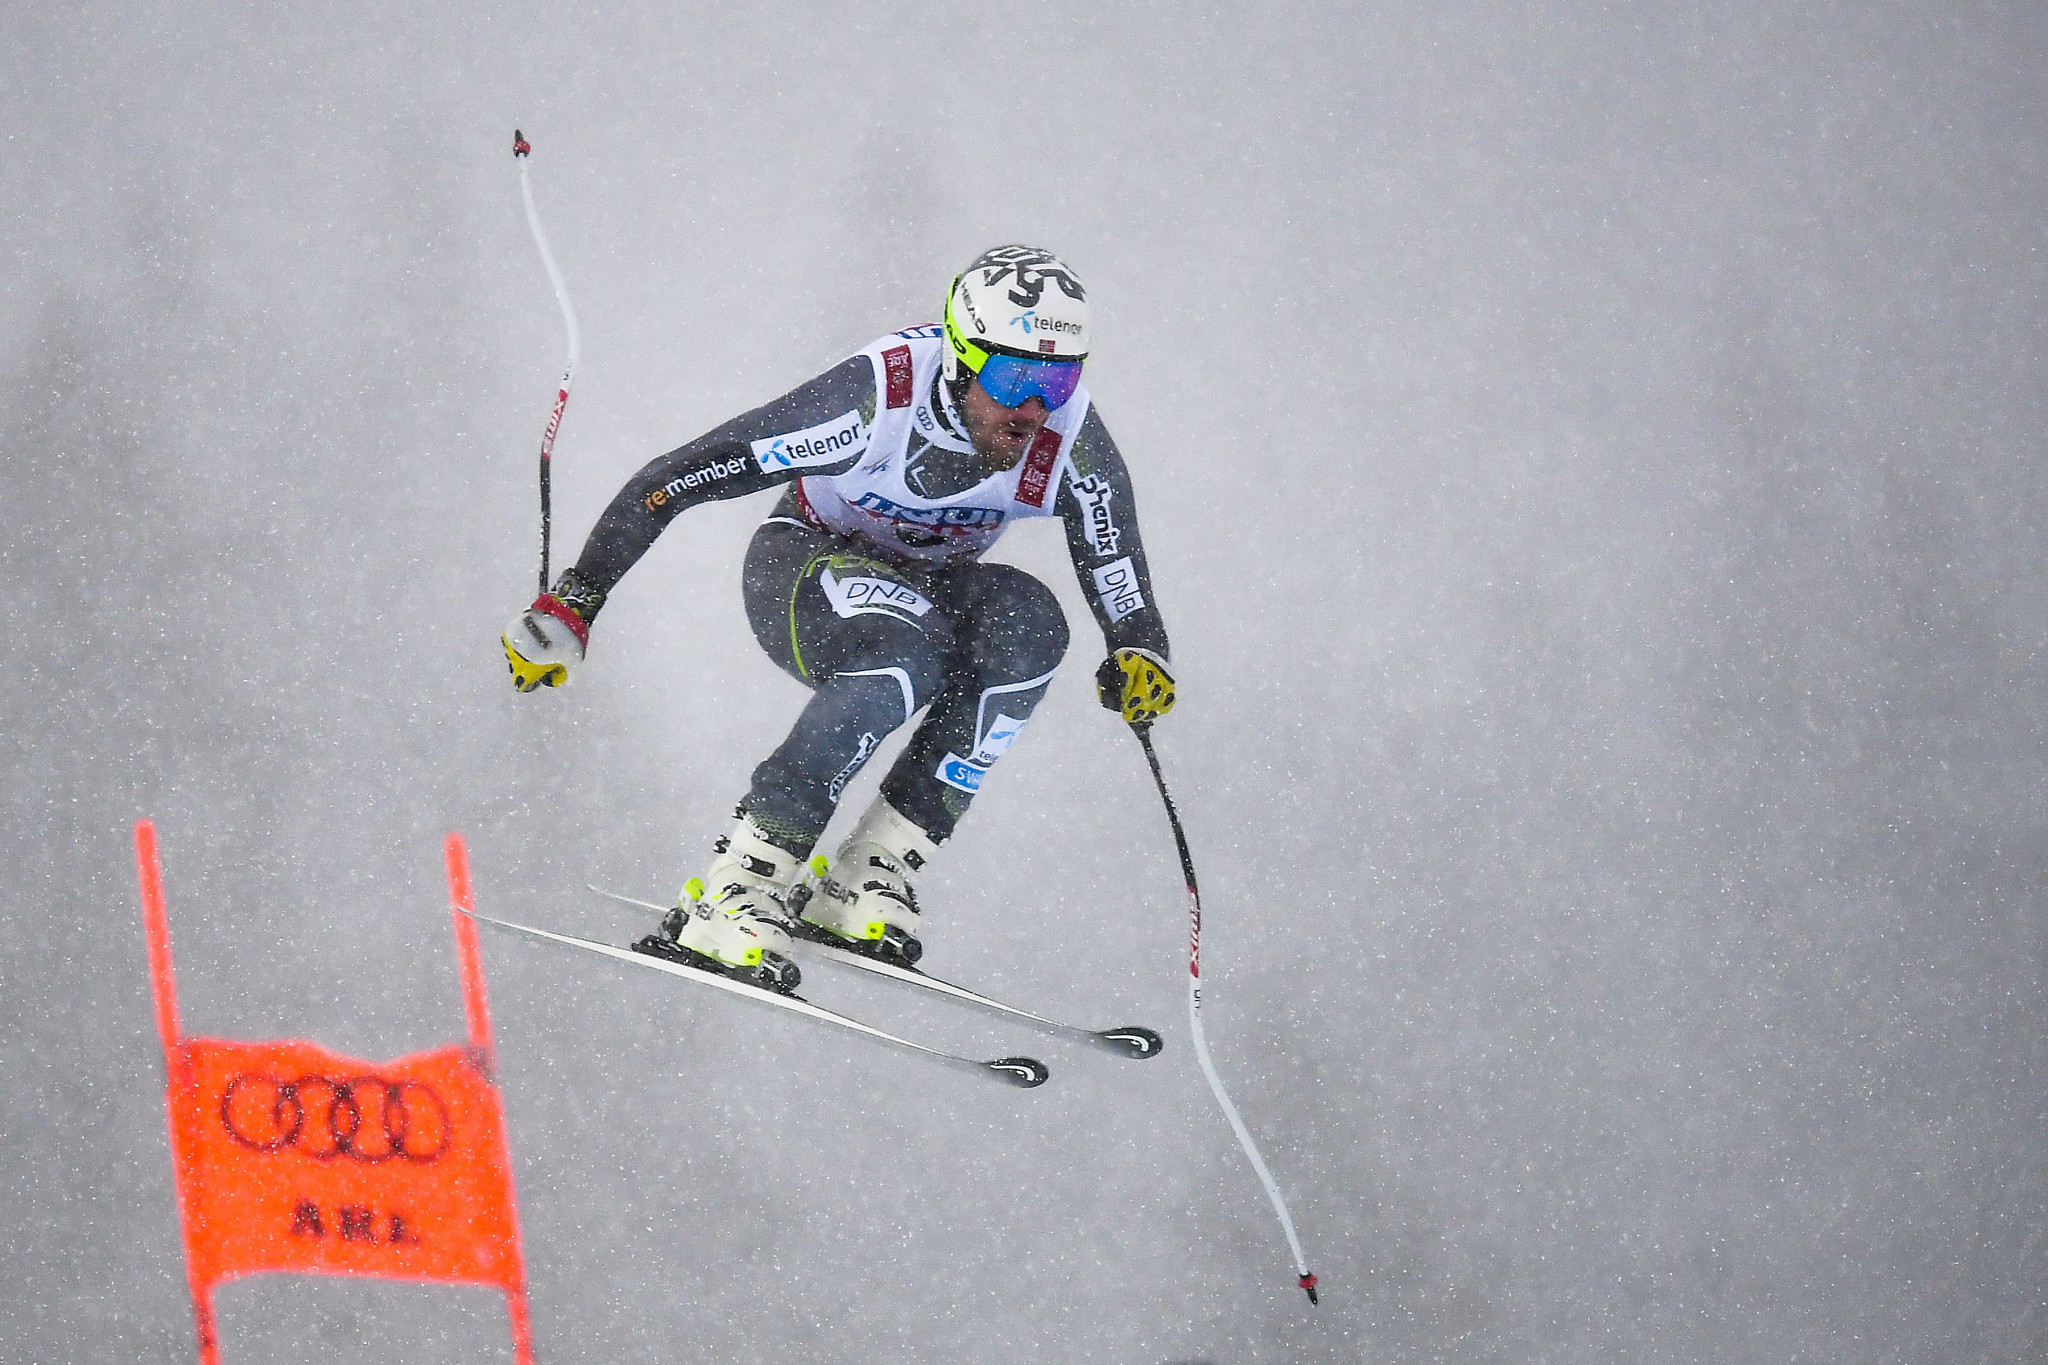 Jansrud triumphs as Svindal ends career with downhill silver at FIS Alpine Skiing World Championships